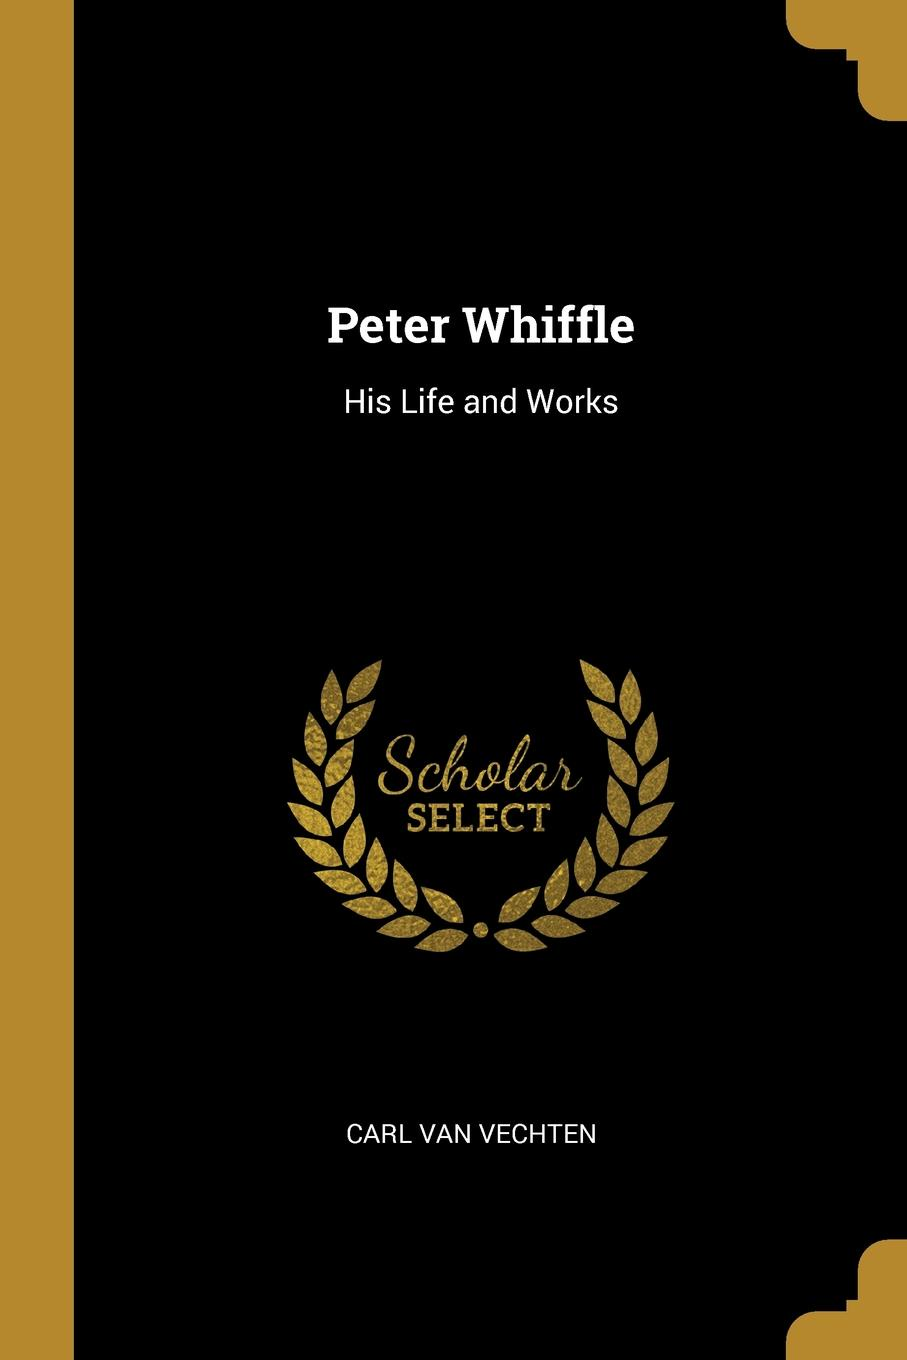 Peter Whiffle. His Life and Works